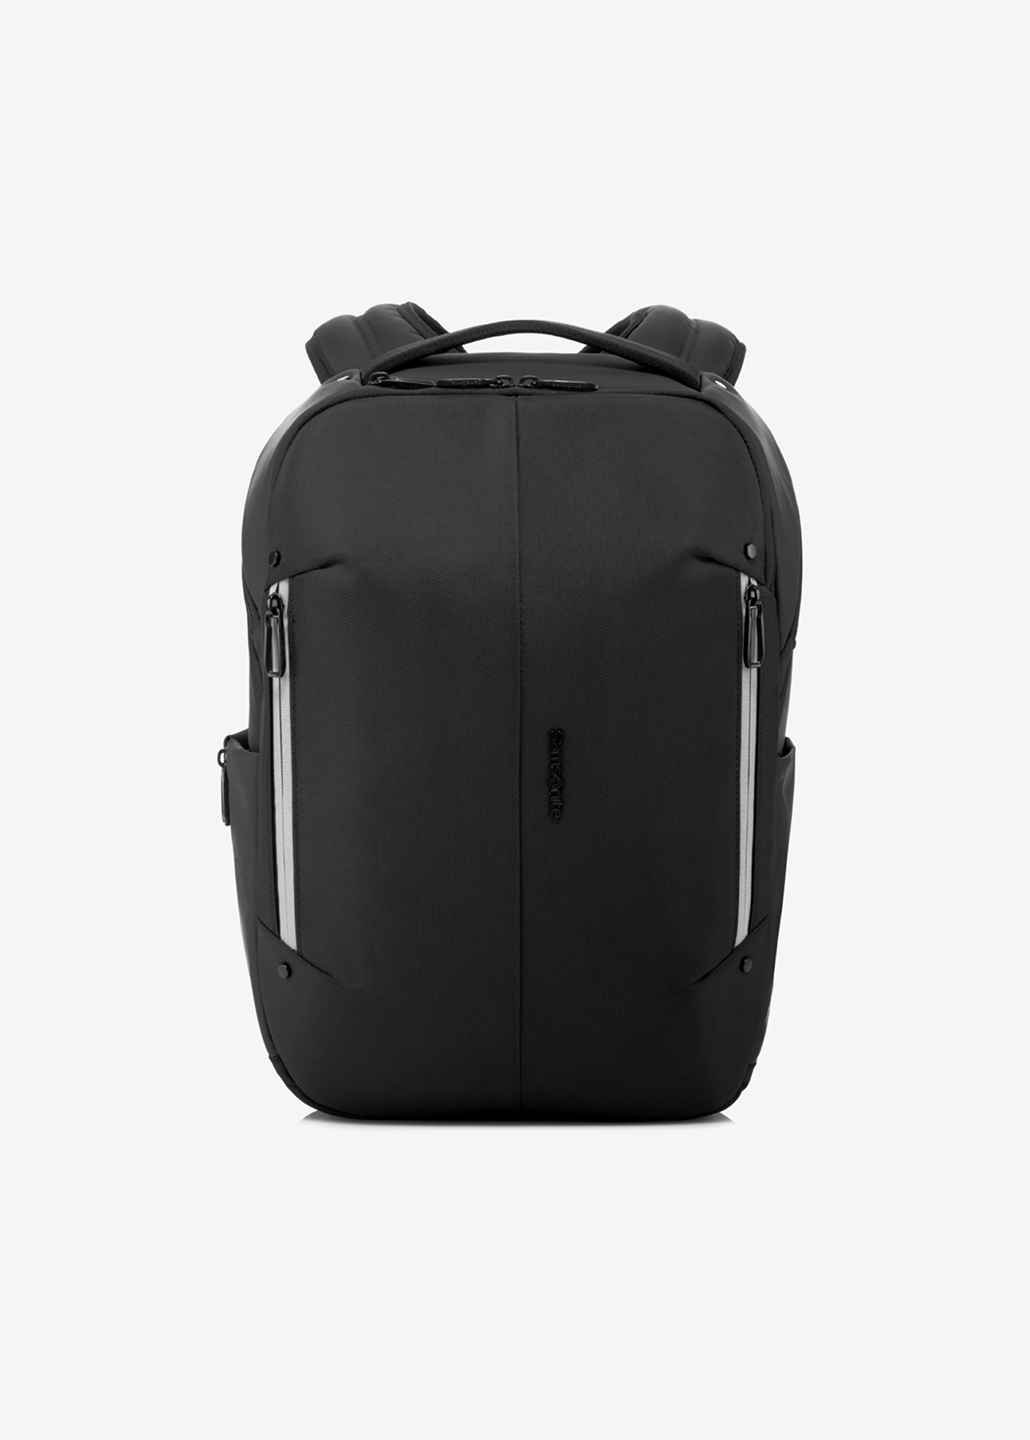 Samsonite Konnect-i Backpack